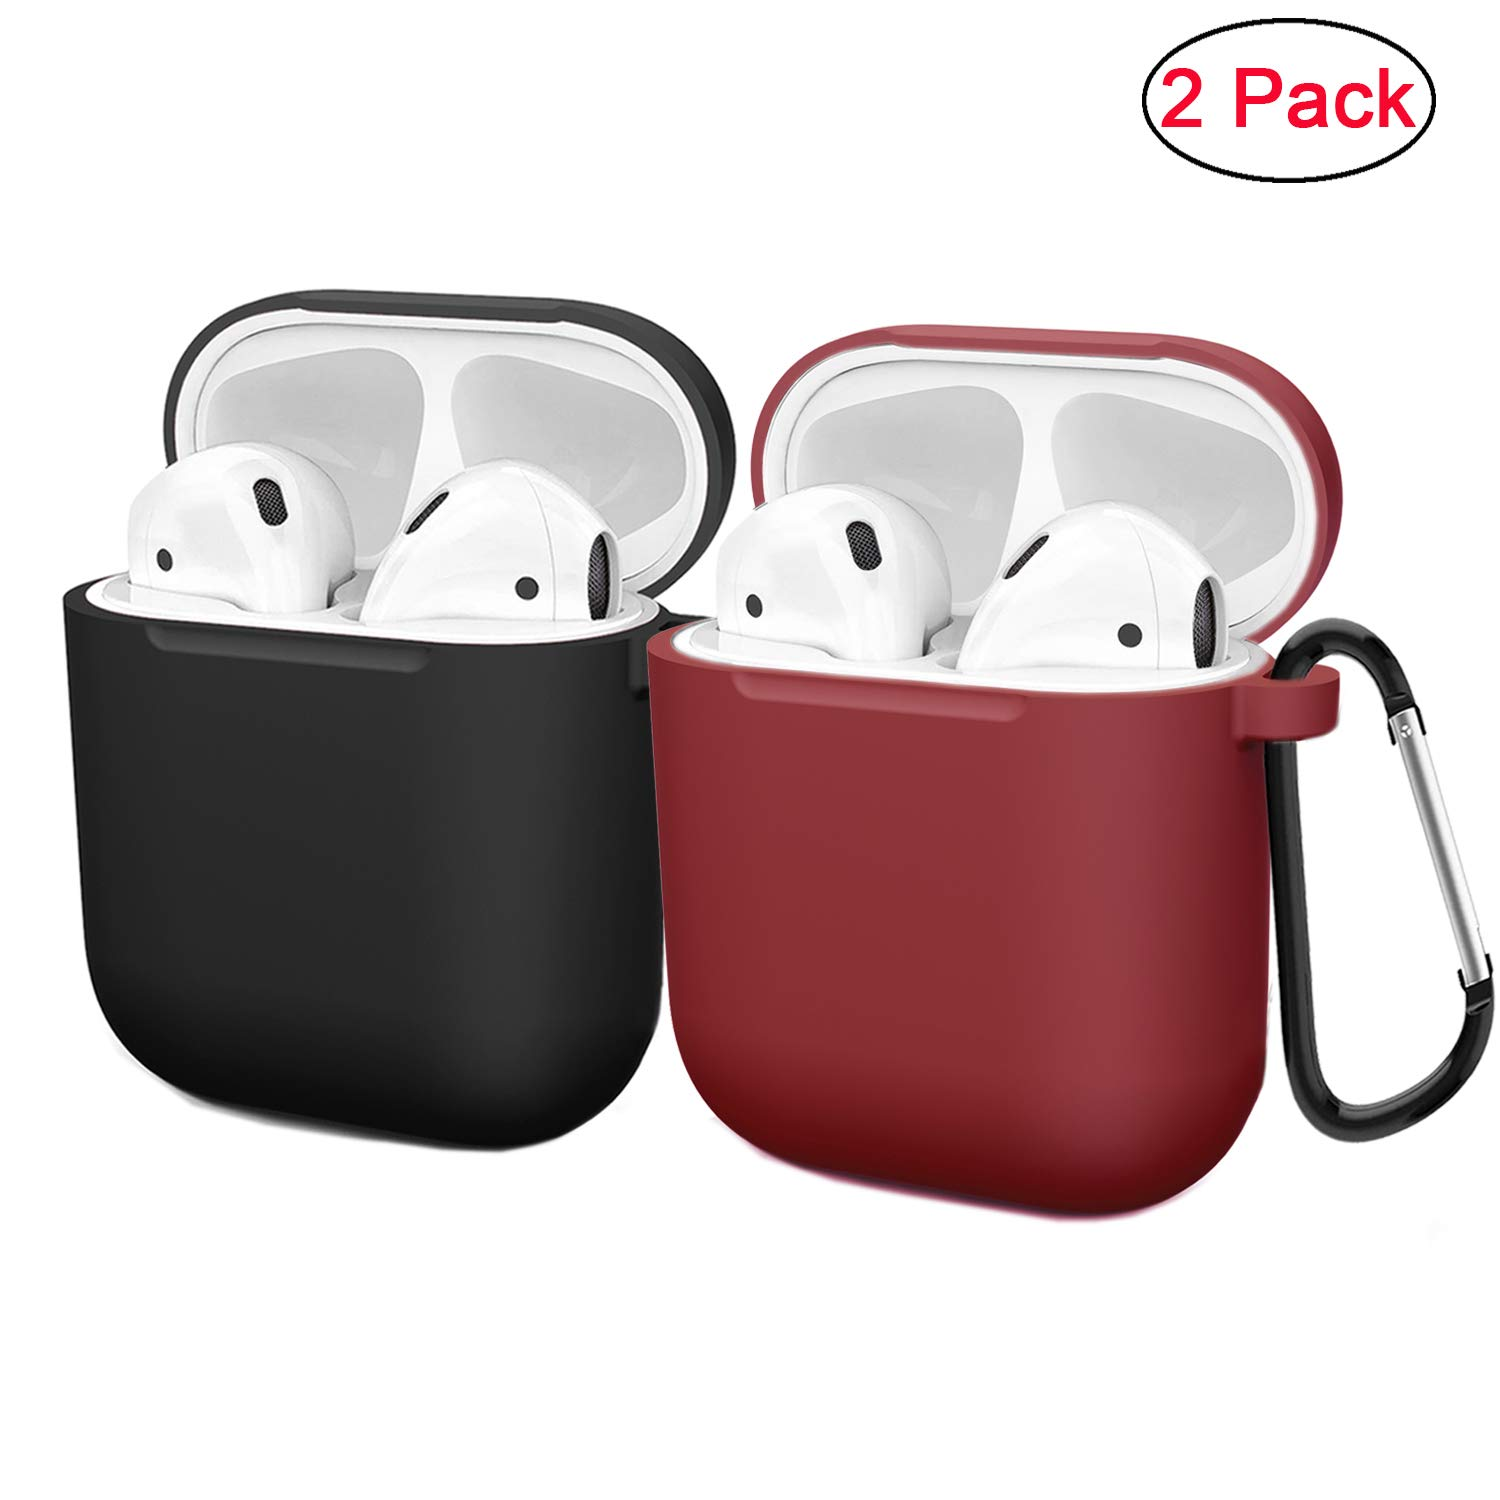 best airpods cases - Rubber Airpod Cases Cheap